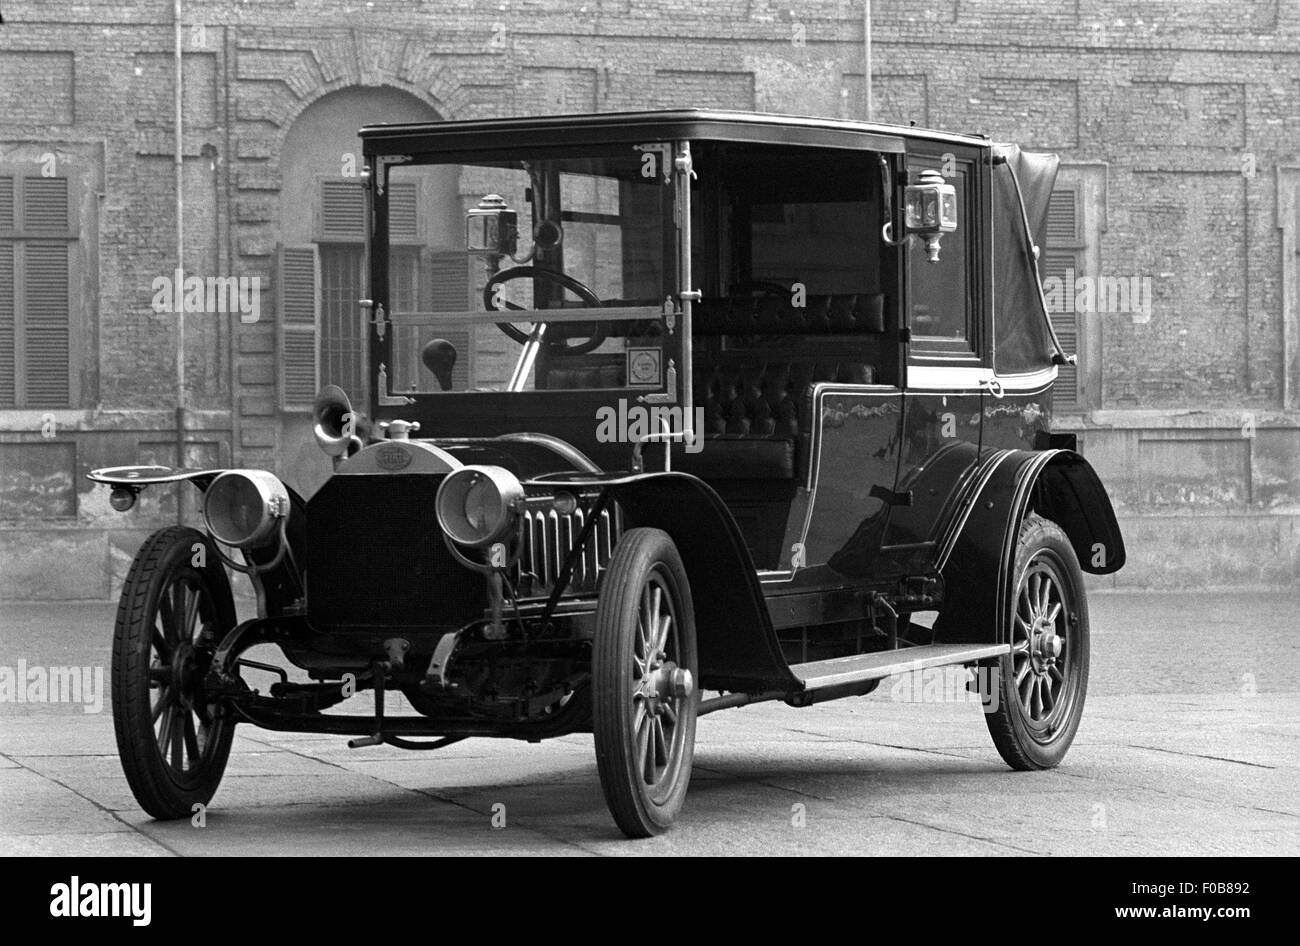 Early 20th century Fiat motor car - Stock Image